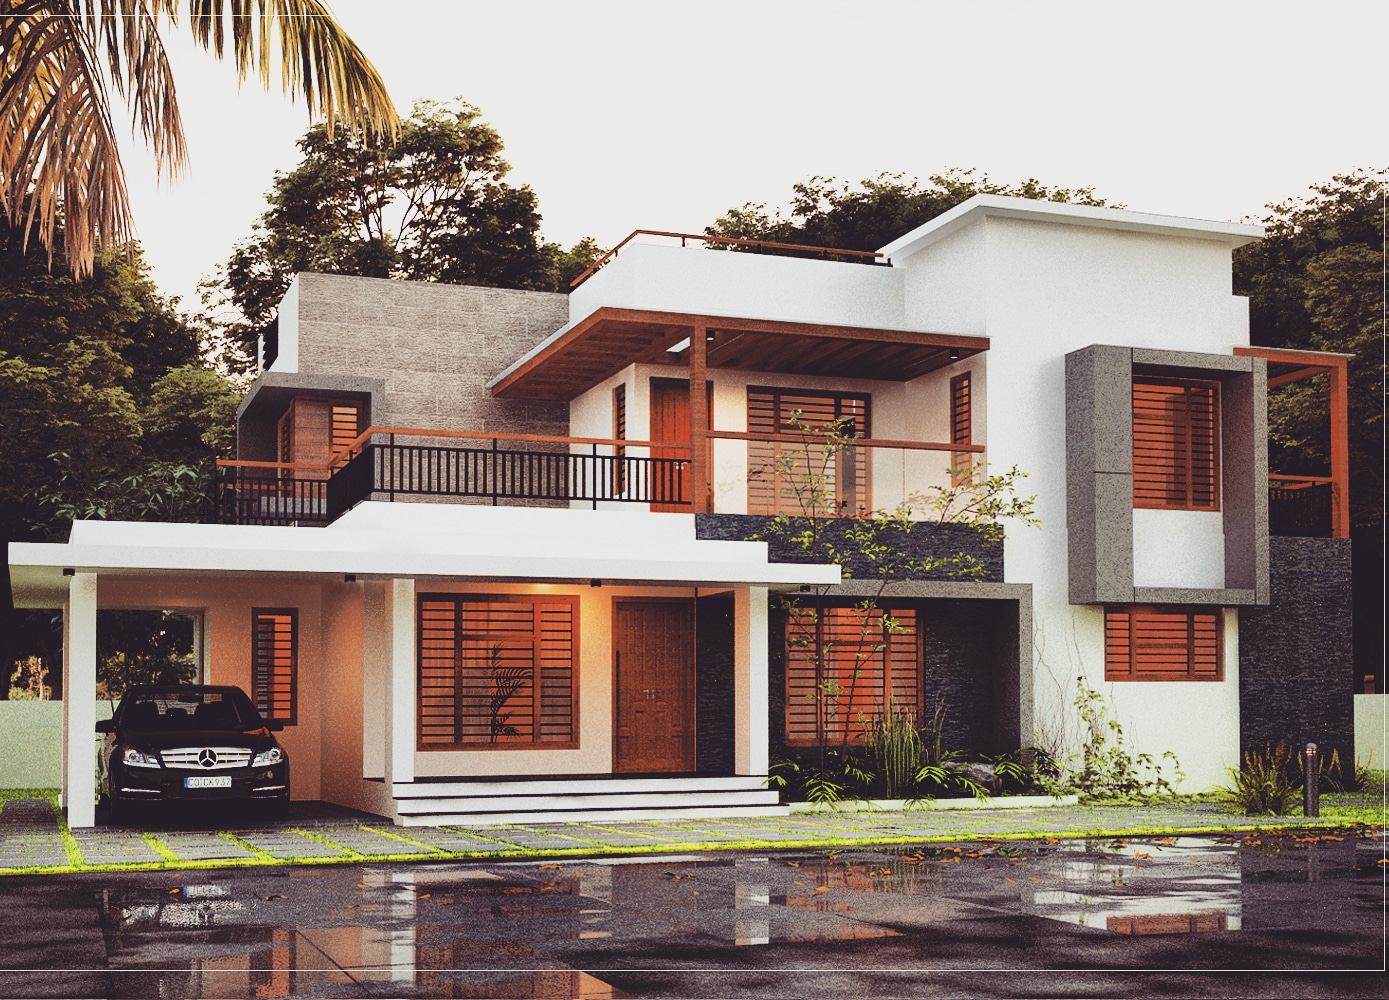 4 Bedroom House plans 2100 sq ft two floor Kerala Contemporary style